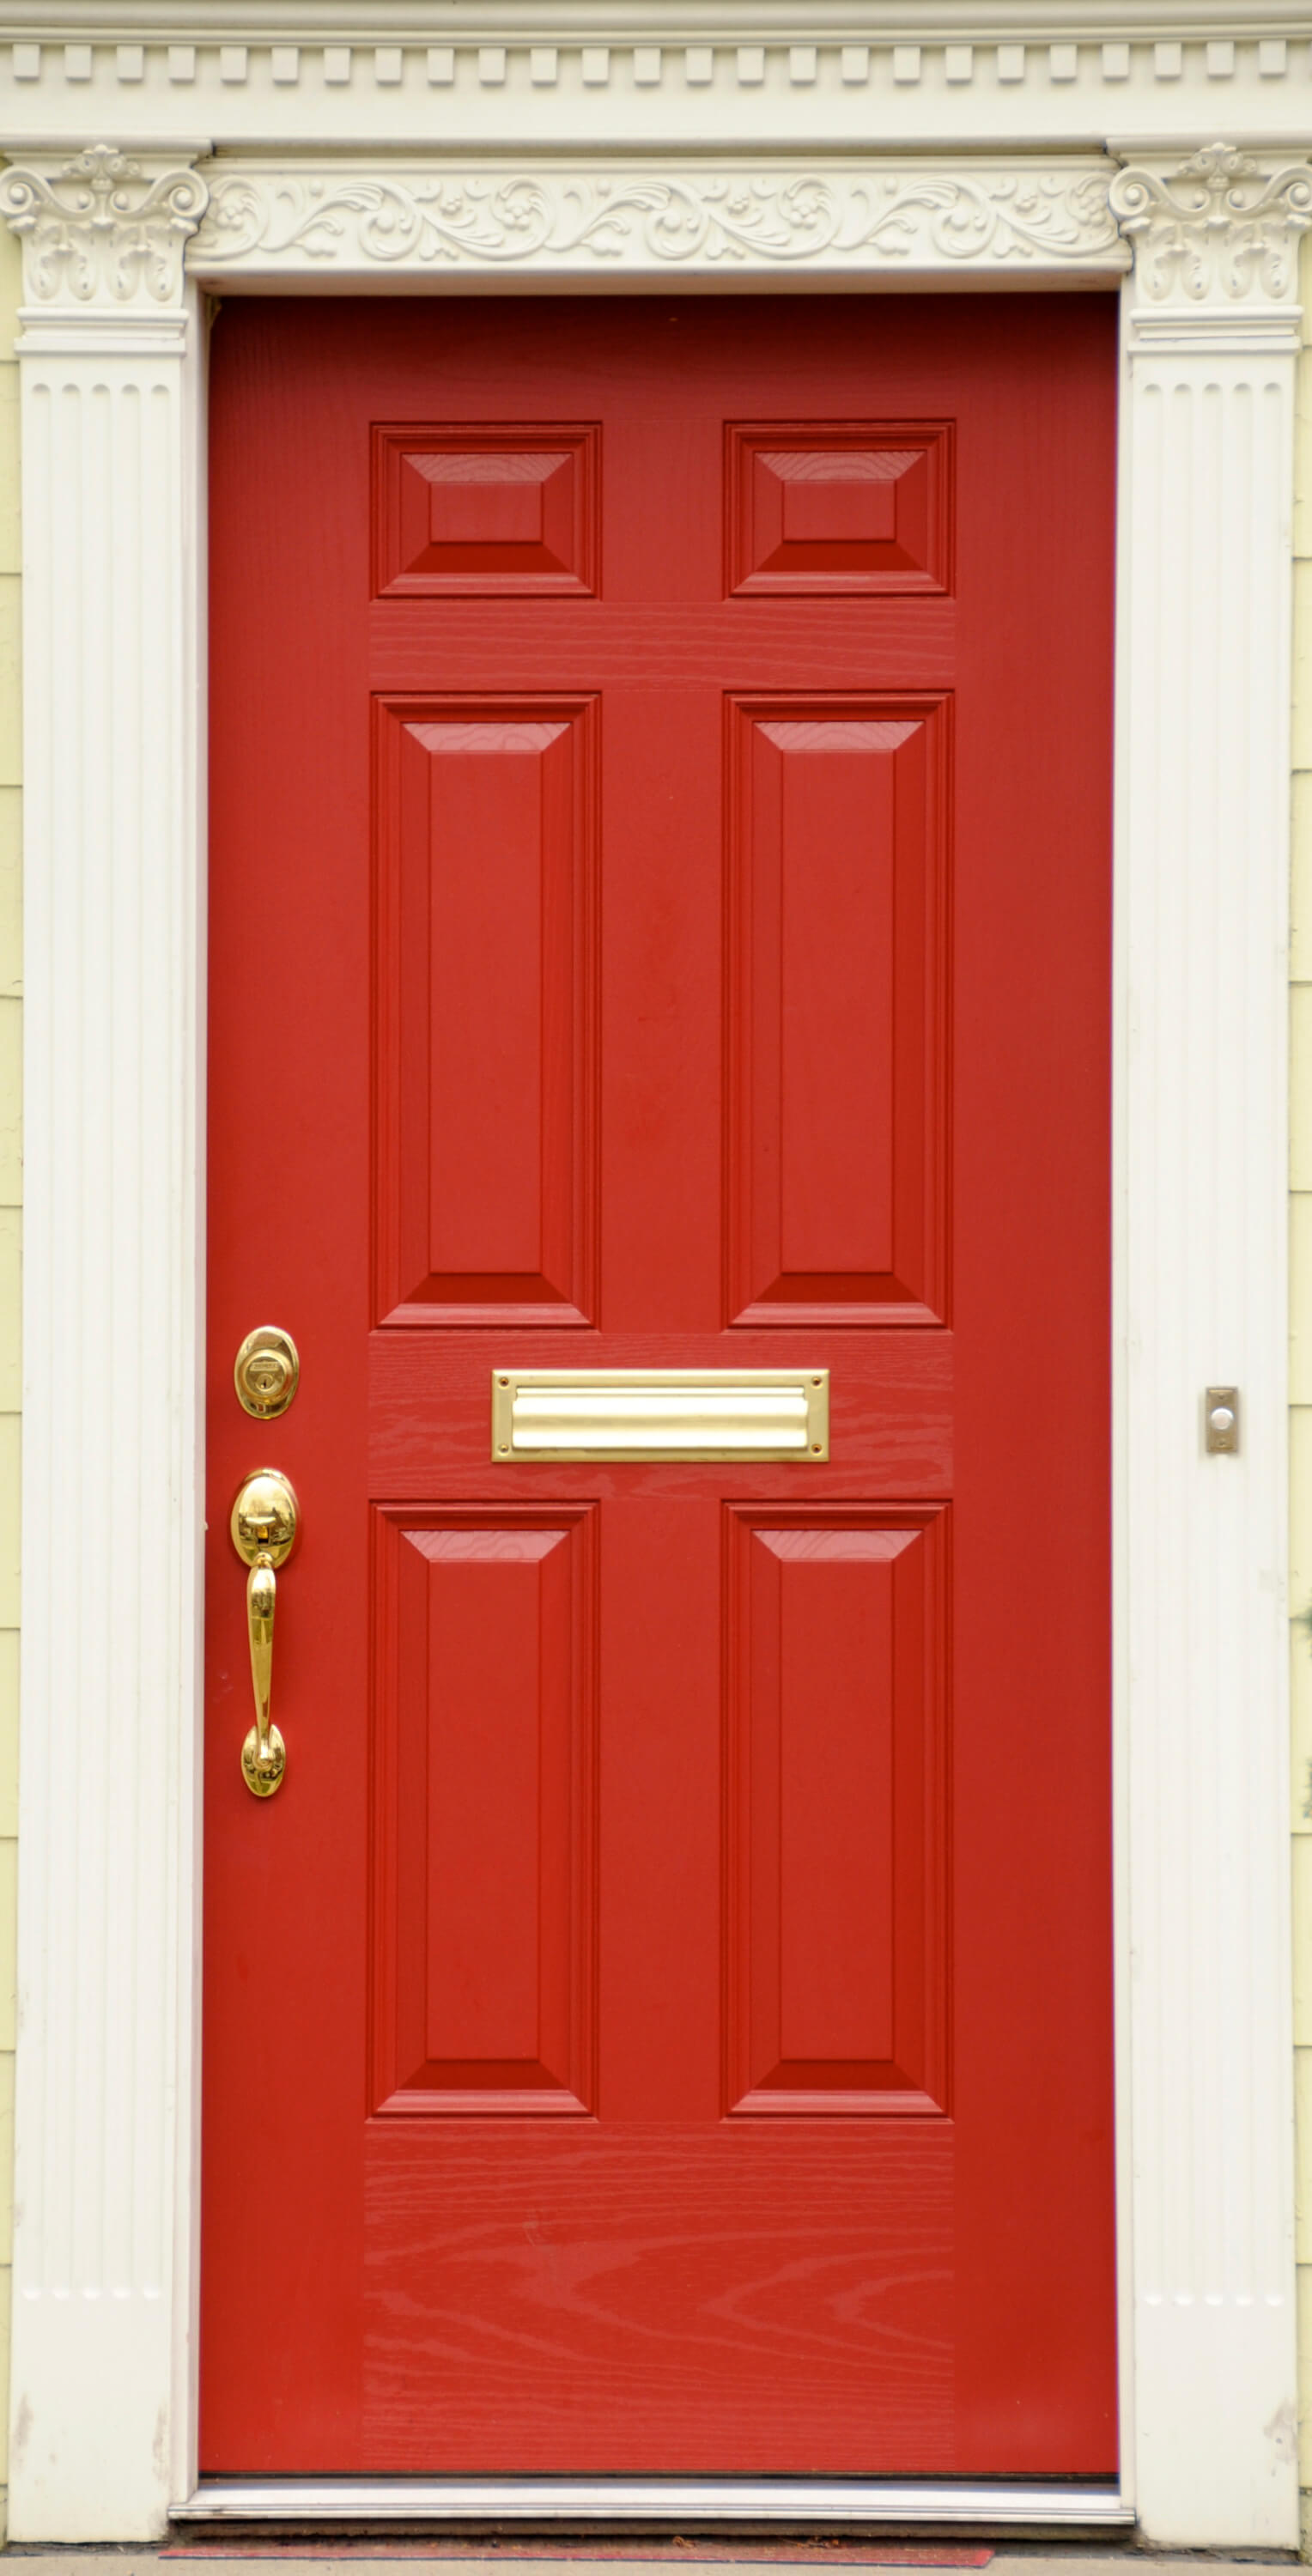 The wood grain of this painted door is still clearly visible beneath the bold red. The ornate trim adds elegance to the otherwise unassuming, modestly-sized porch. The fixtures on the door are all brand new, in a shiny gold finish.